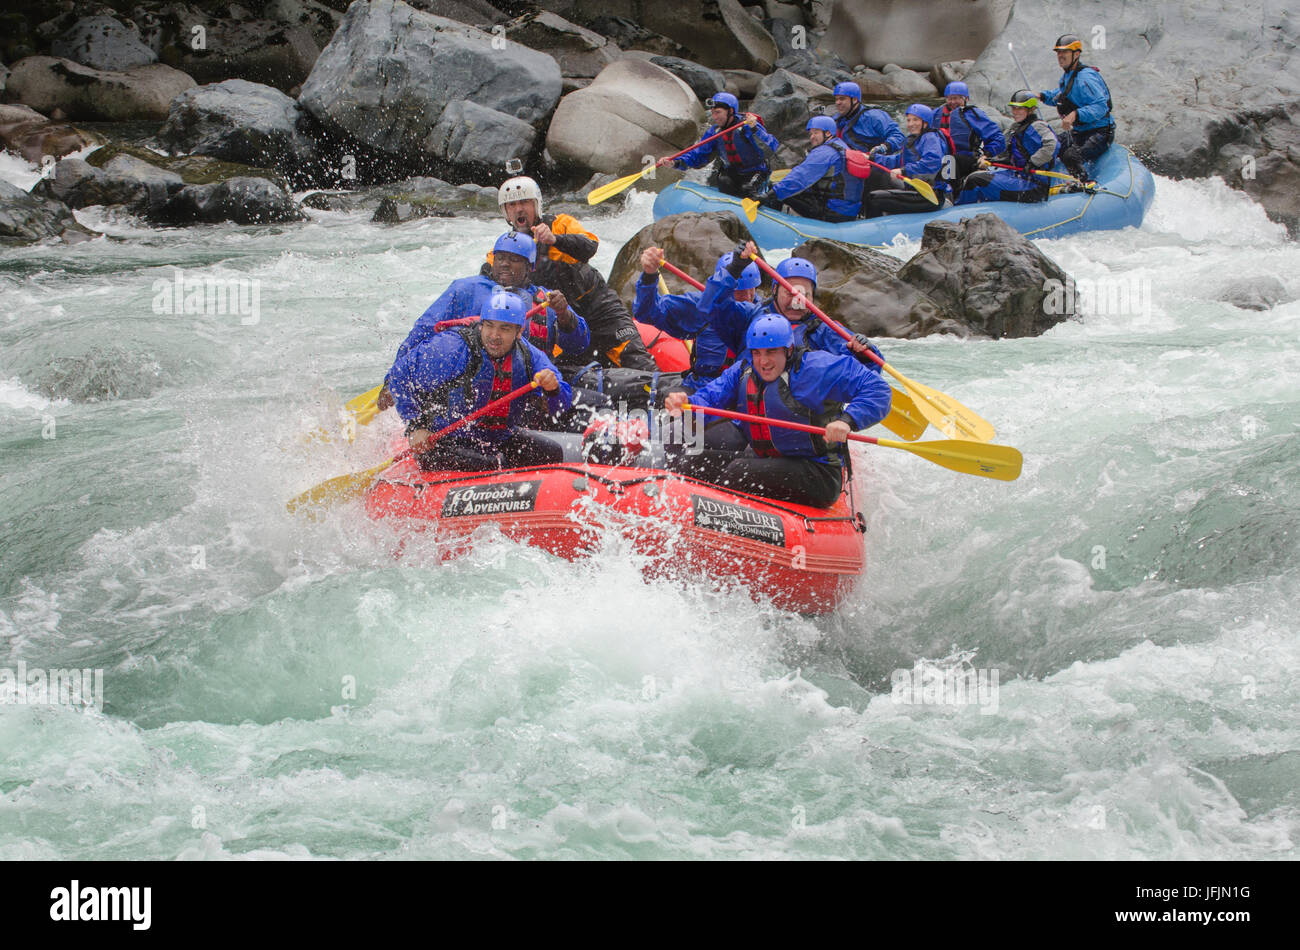 Whitewater rafting on the Skykomish River, Washington - Stock Image